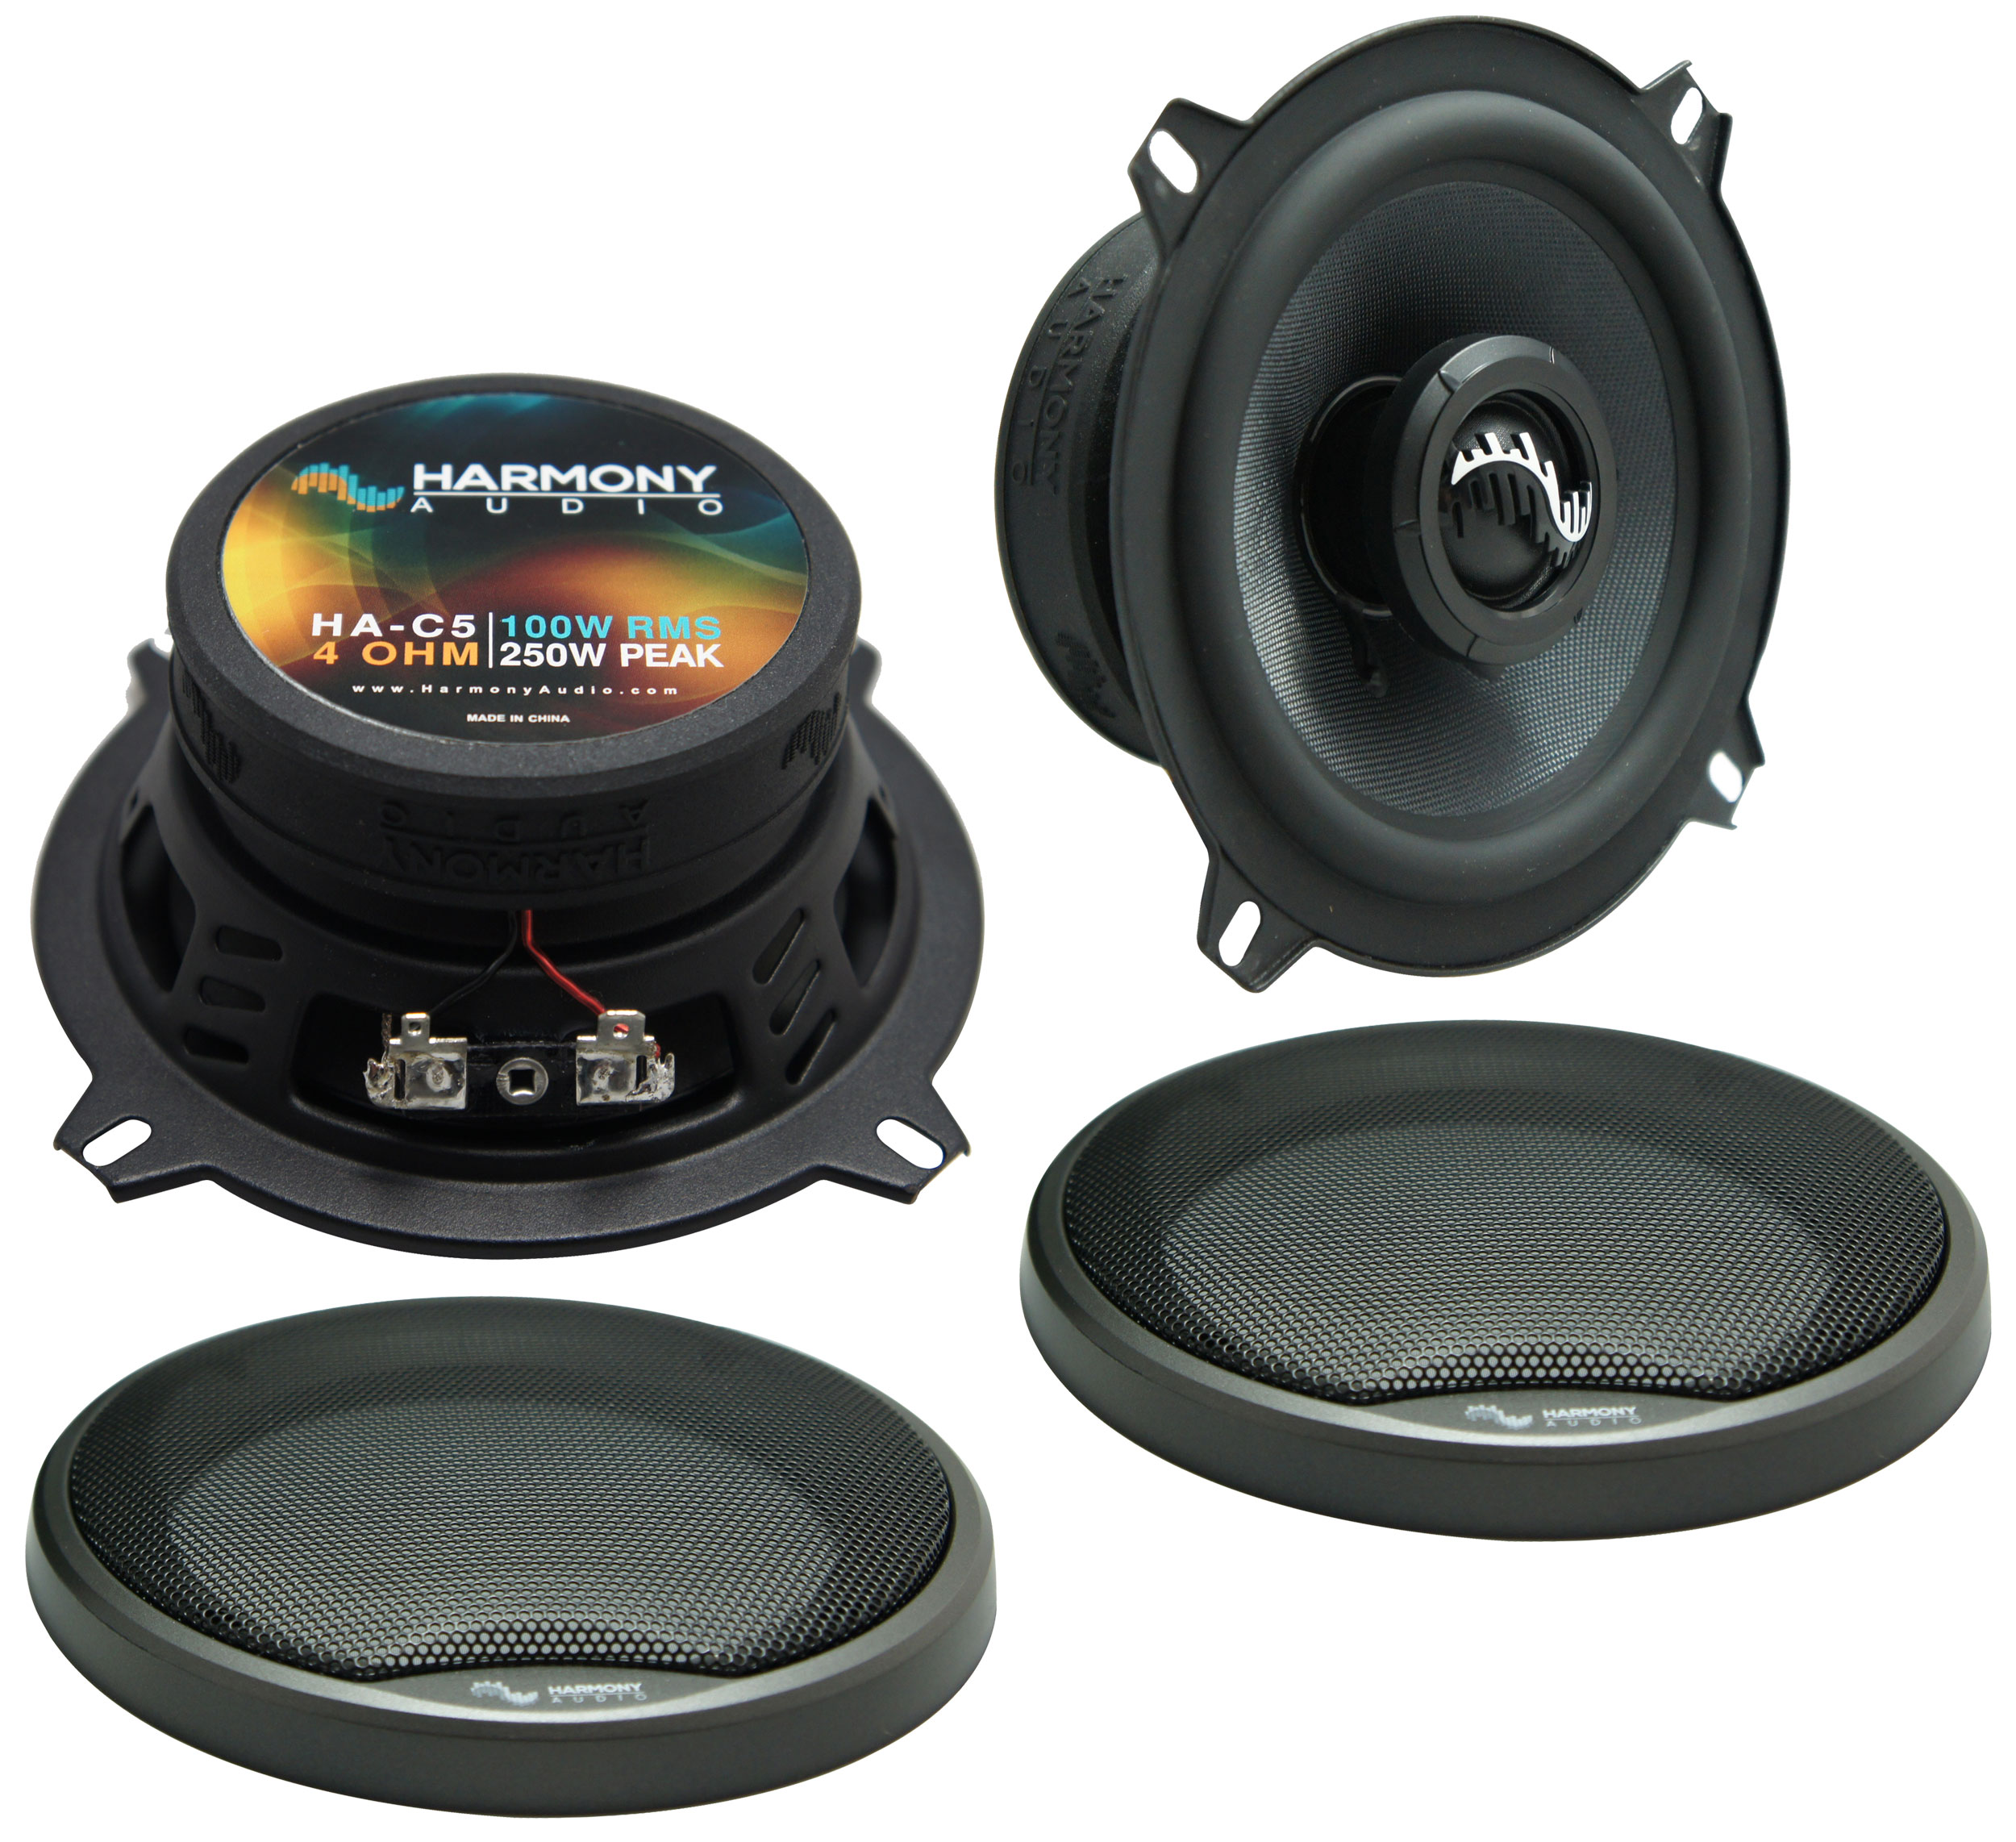 Fits BMW M3 2002-2006 Front Door Replacement Speaker Harmony HA-C5 Premium Speakers New